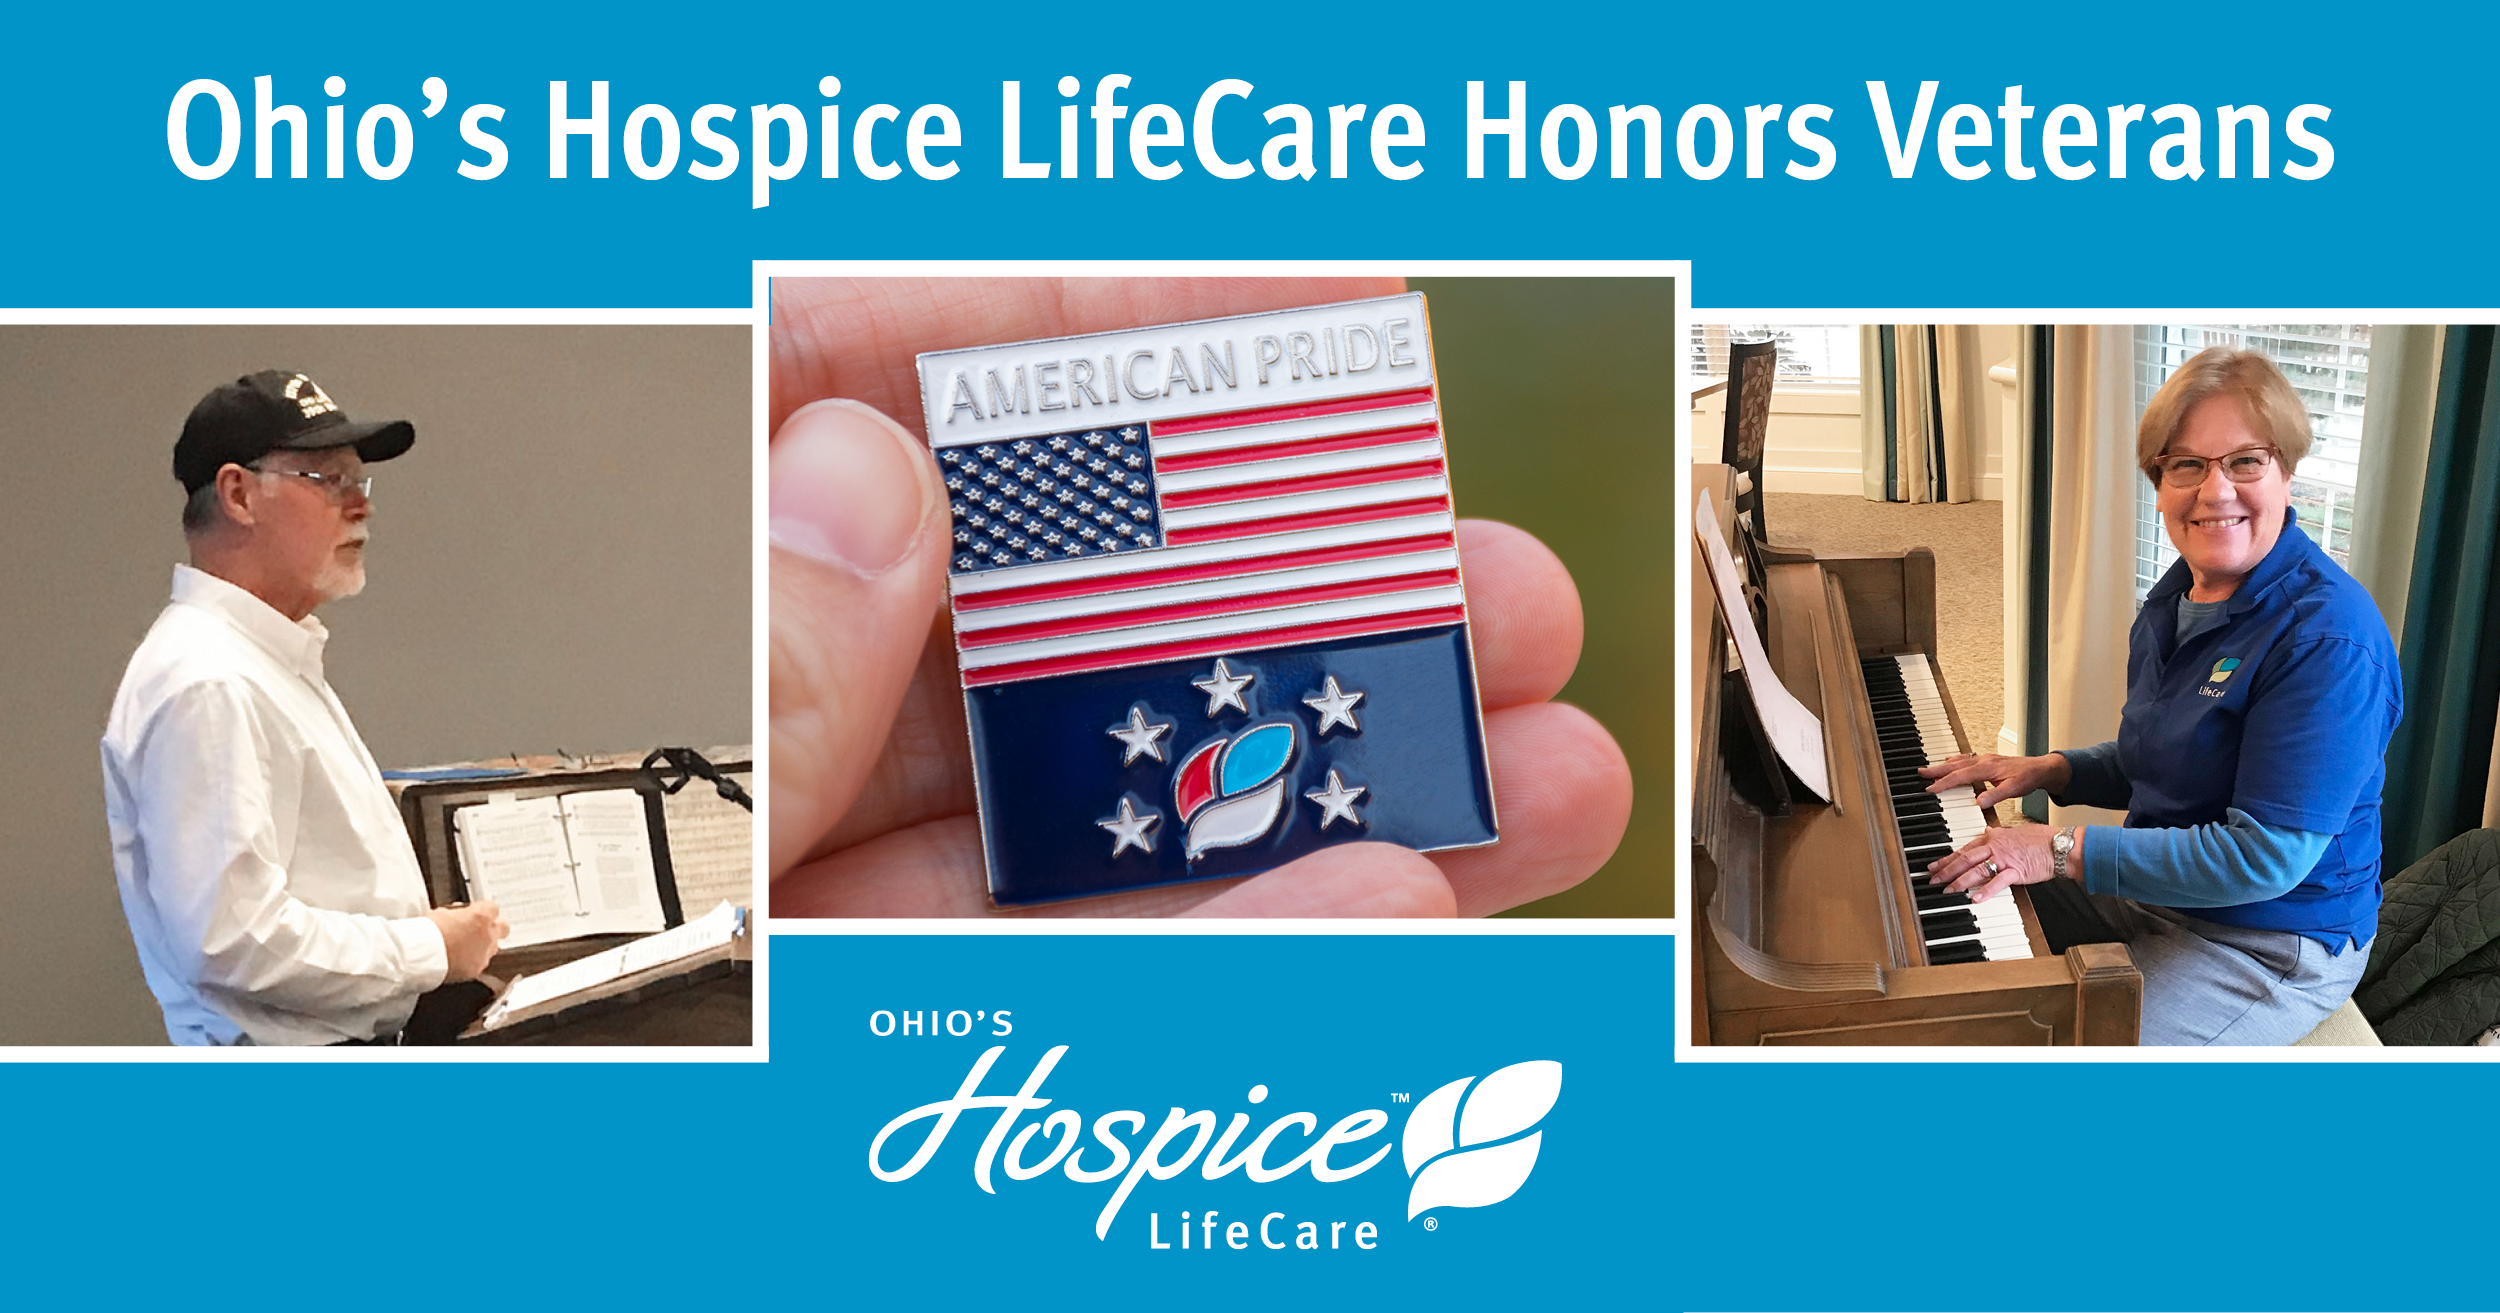 Ohio's Hospice LifeCare Honors Veterans